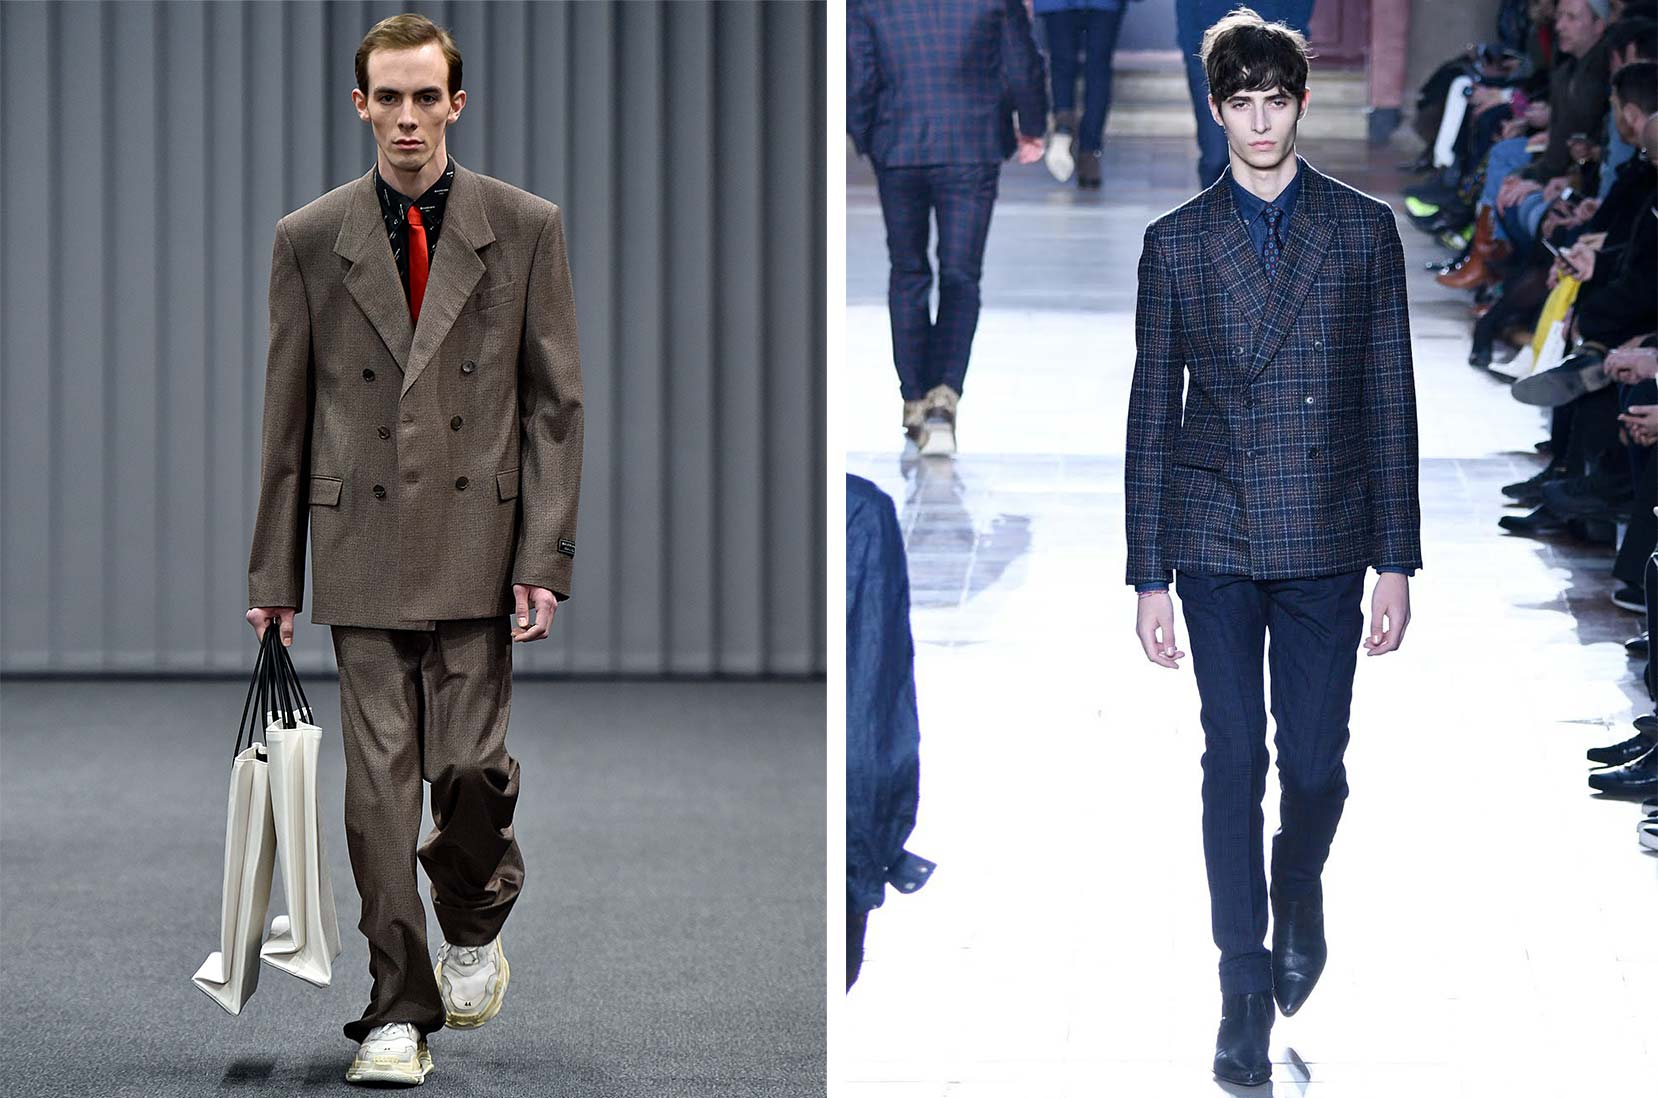 Balenciaga Victor ©VIRGILE/Gamma-Rapho/Getty Images                      Oscar Kindelan på catwalken til Paul Smith Menswear efterår/vinter                                                                                                                2017-2018 som del af Paris Fashion Week 22. januar, 2017 i Paris i                                                                                                                       Frankrig. (Foto af Peter White/Getty Images)